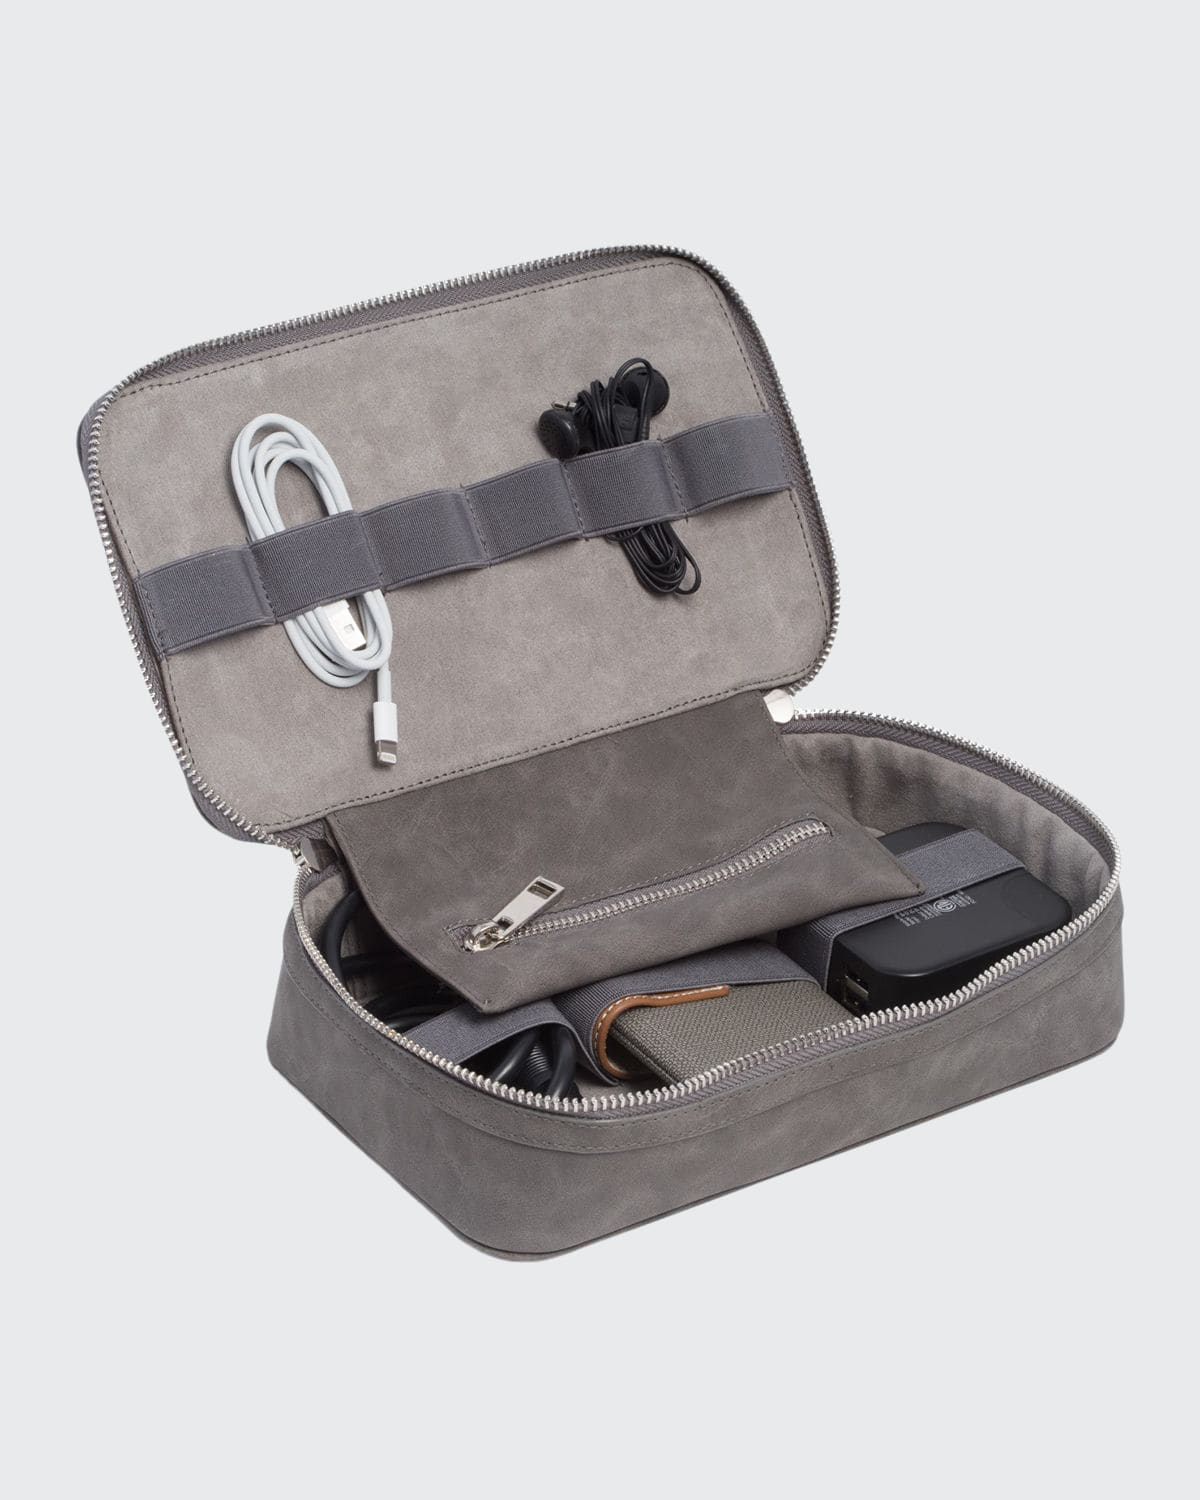 Tech Accessory Travel Case/Toiletry Bag